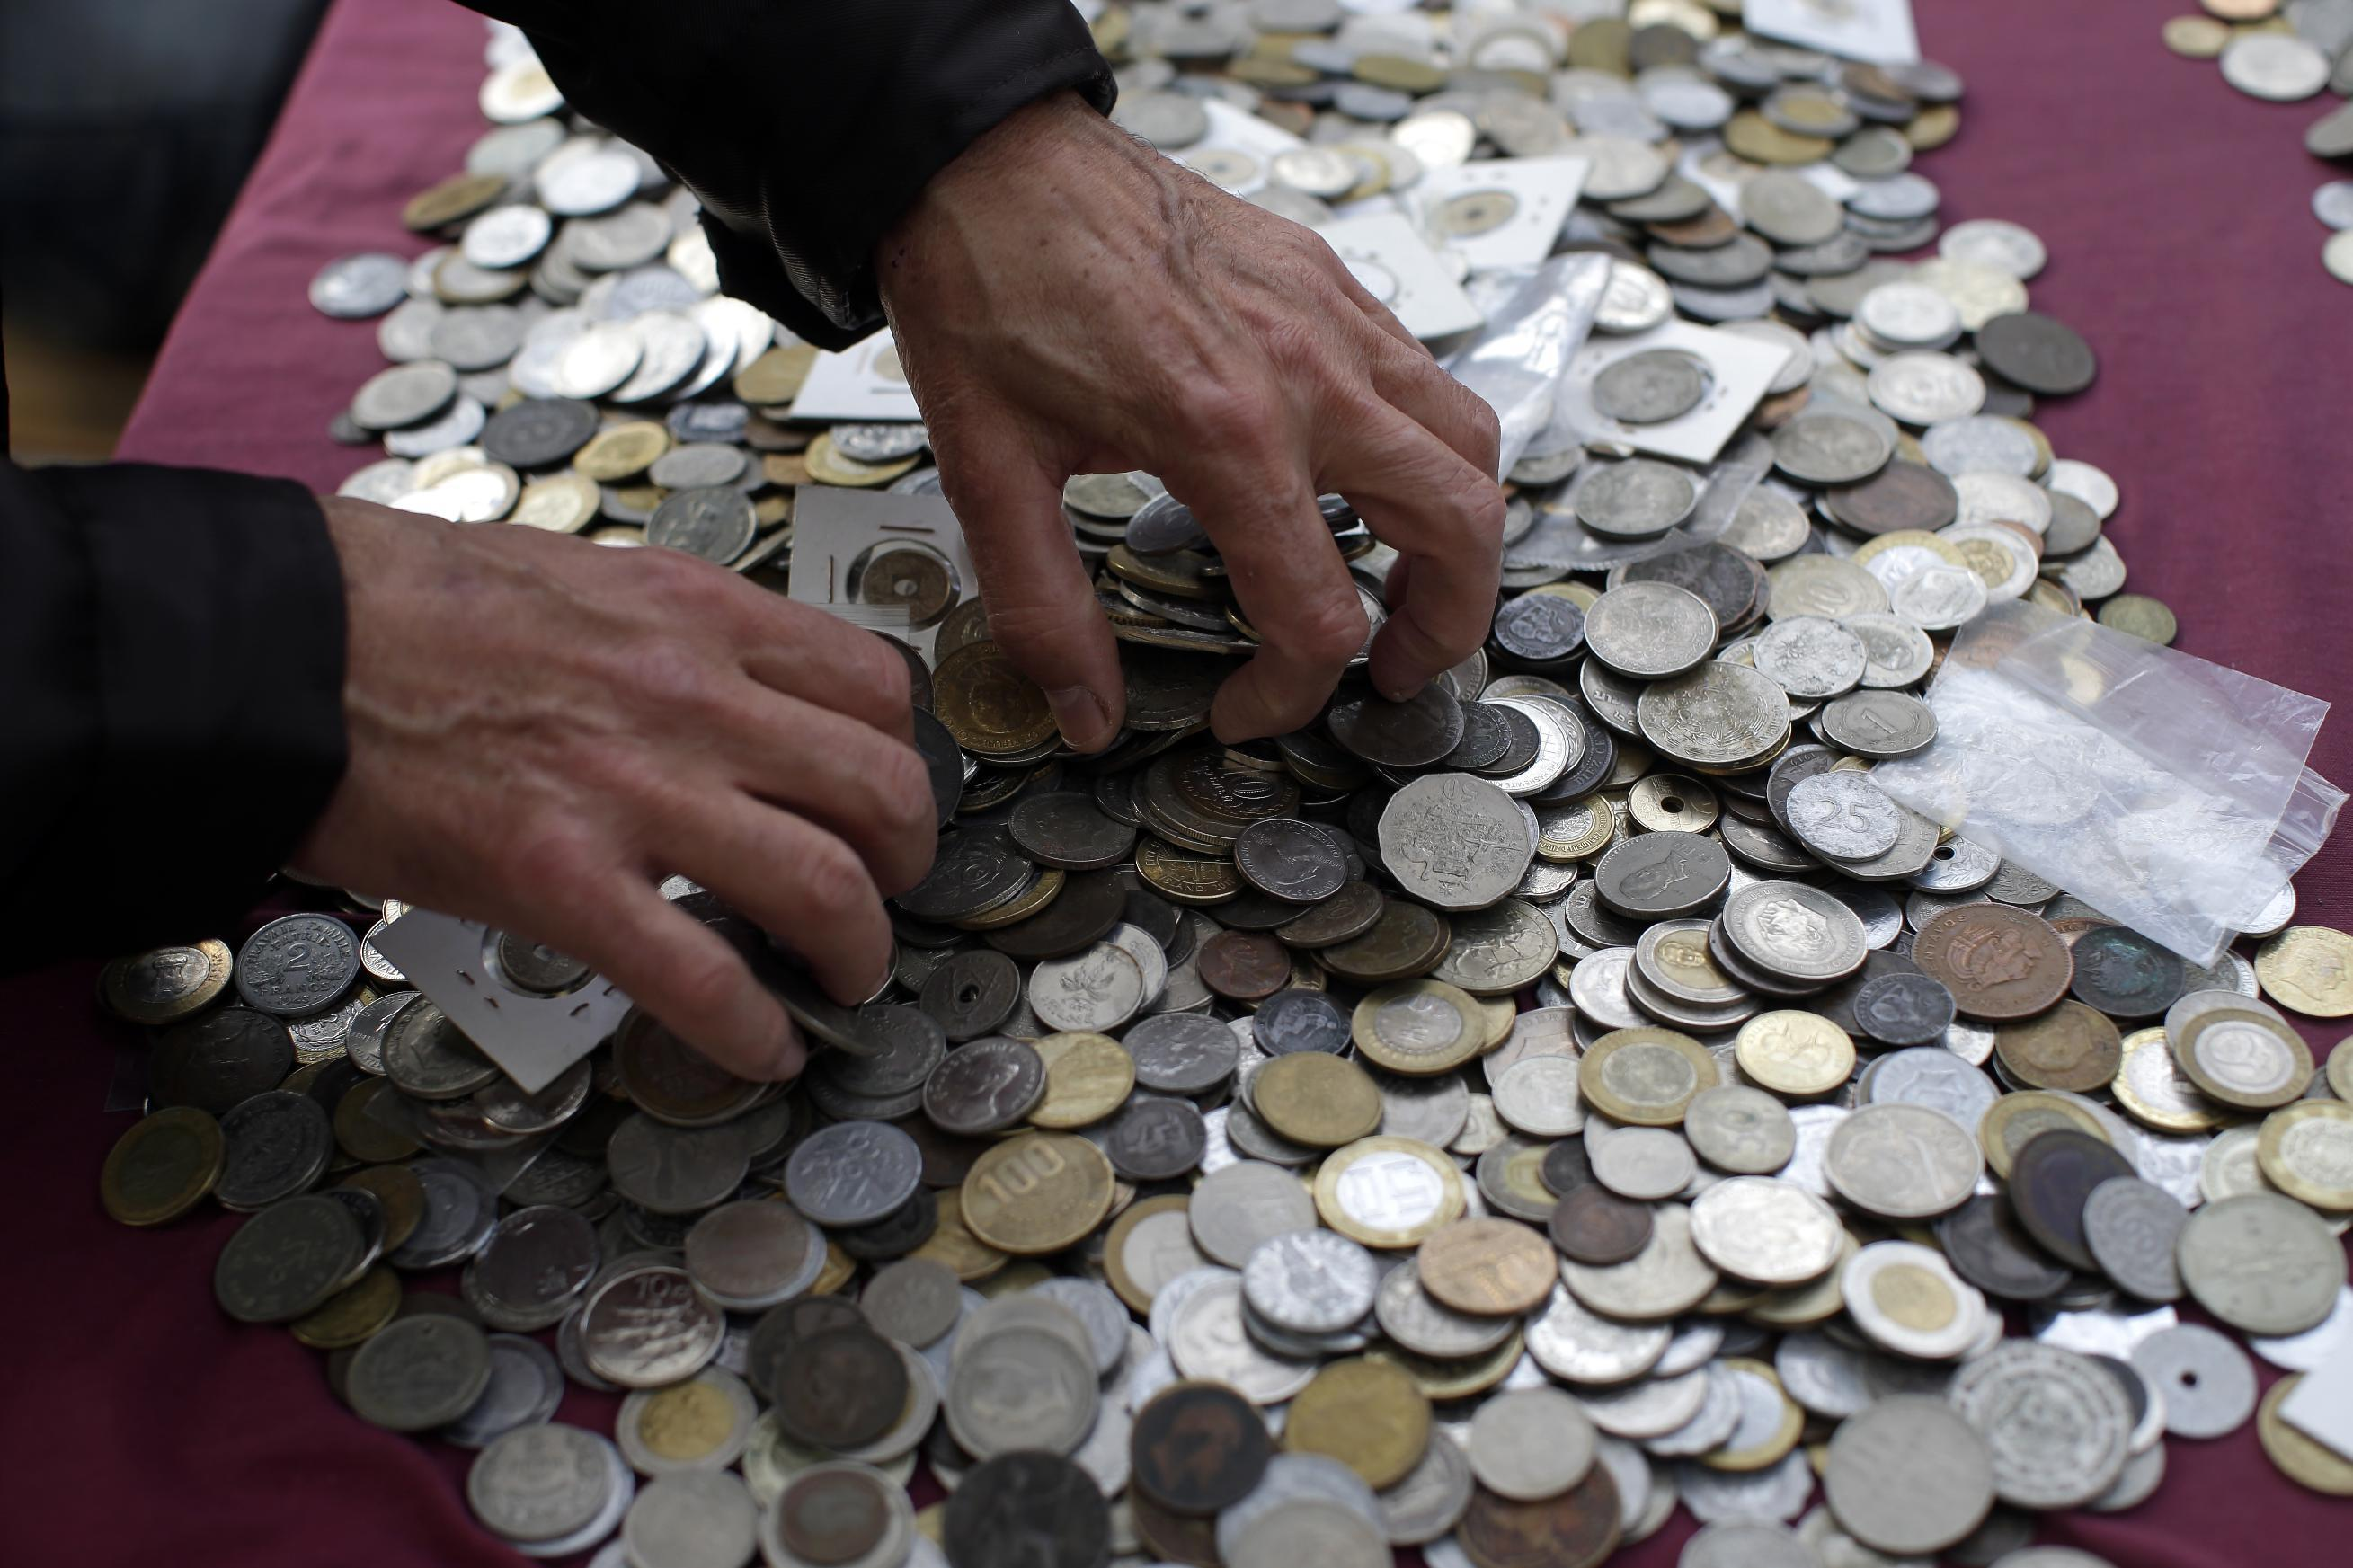 Here's what happens when you give cash to the extremely poor